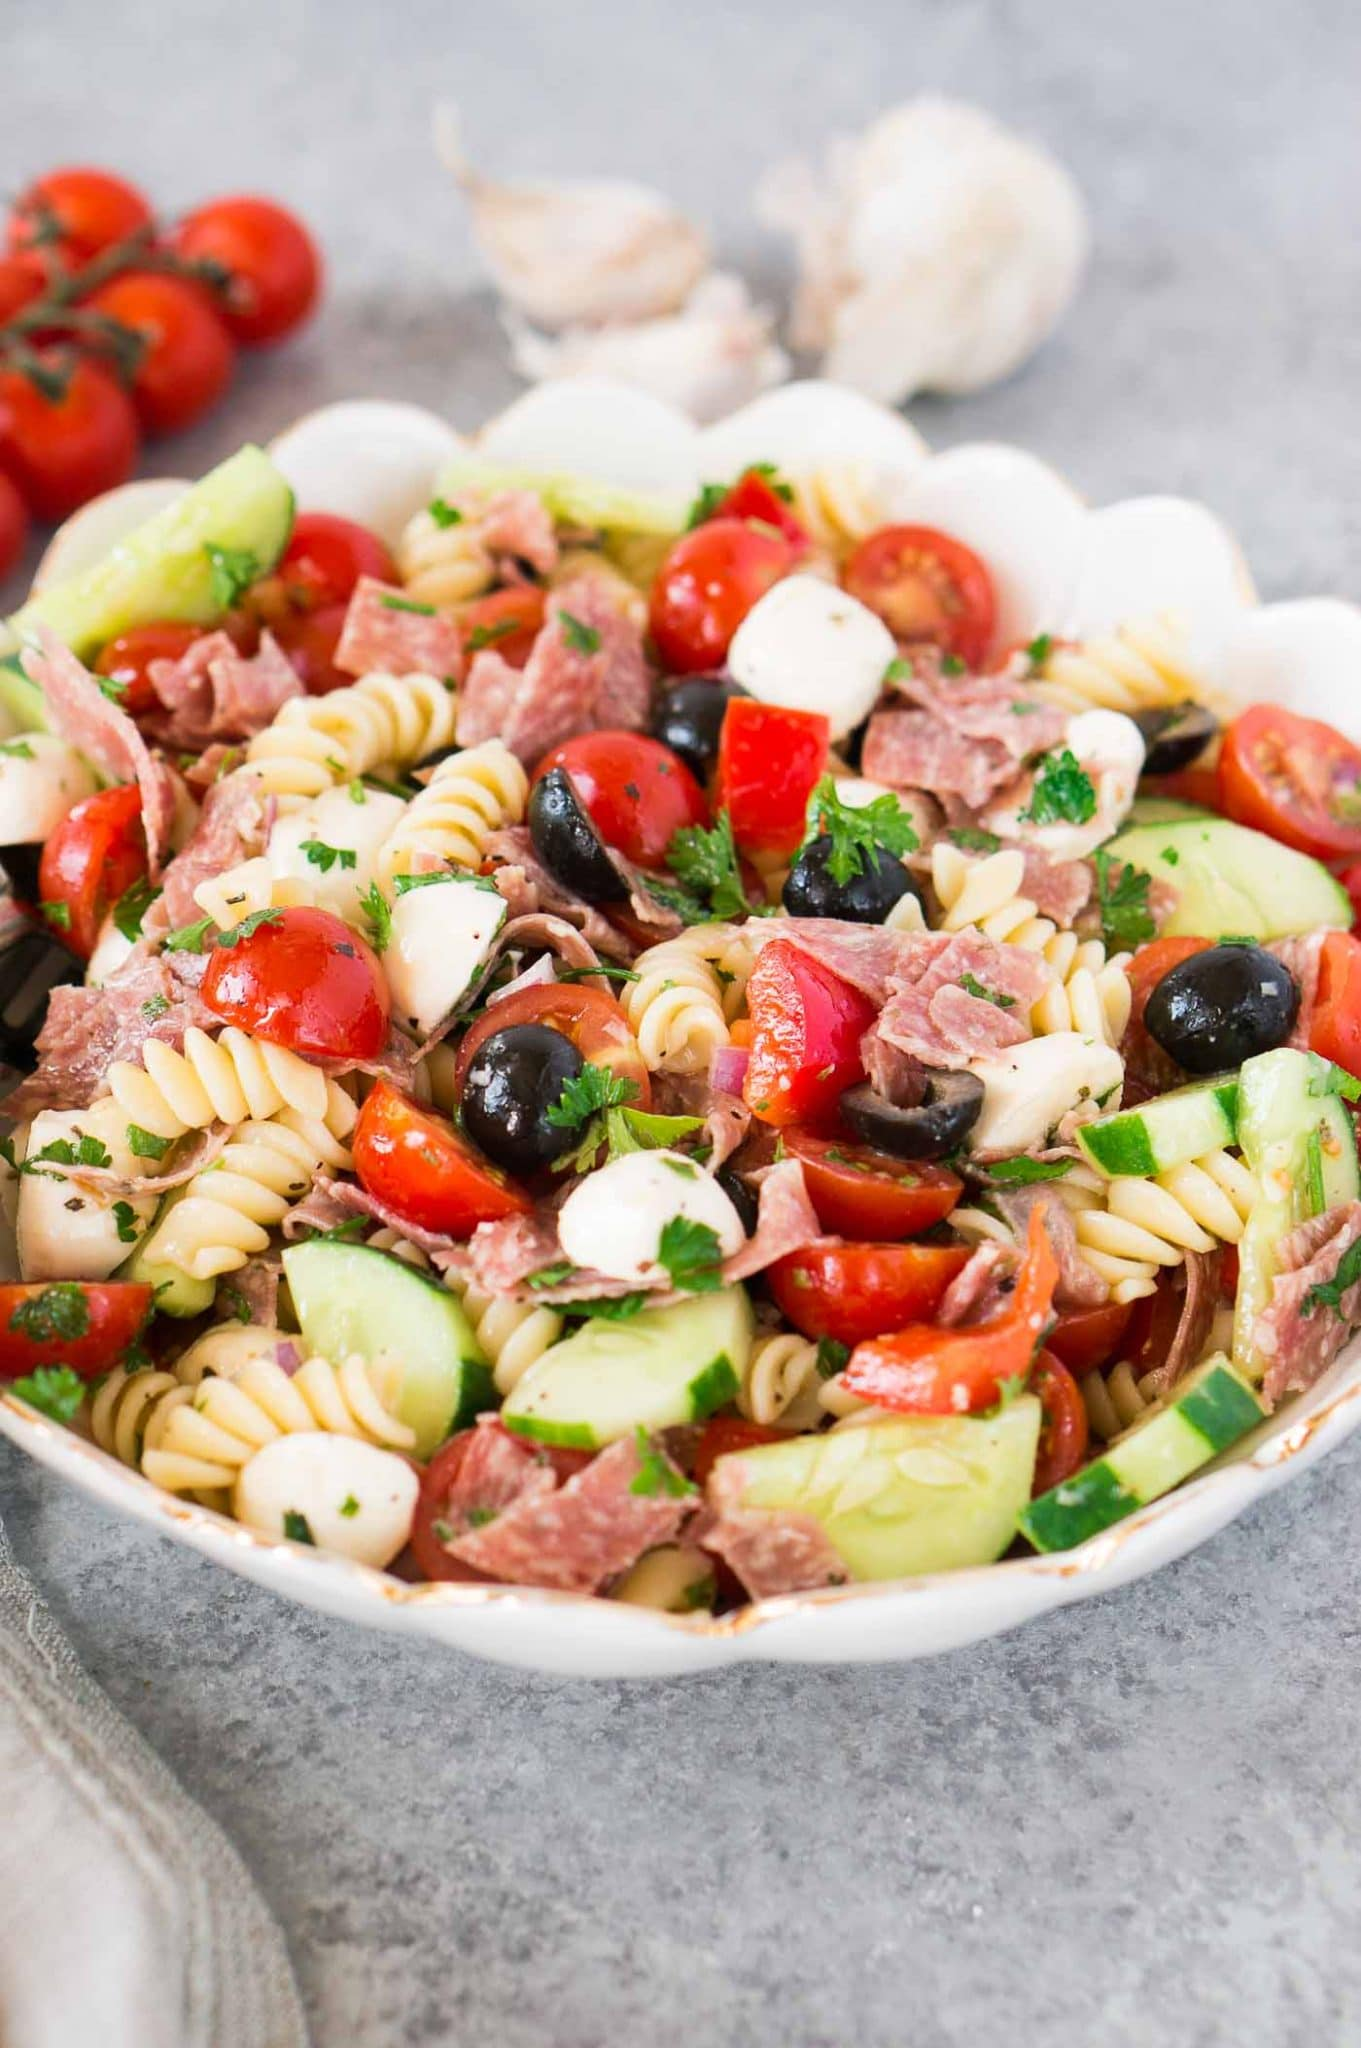 Pasta salad with mozzarella salami tomatoes and cucumbers in a bowl